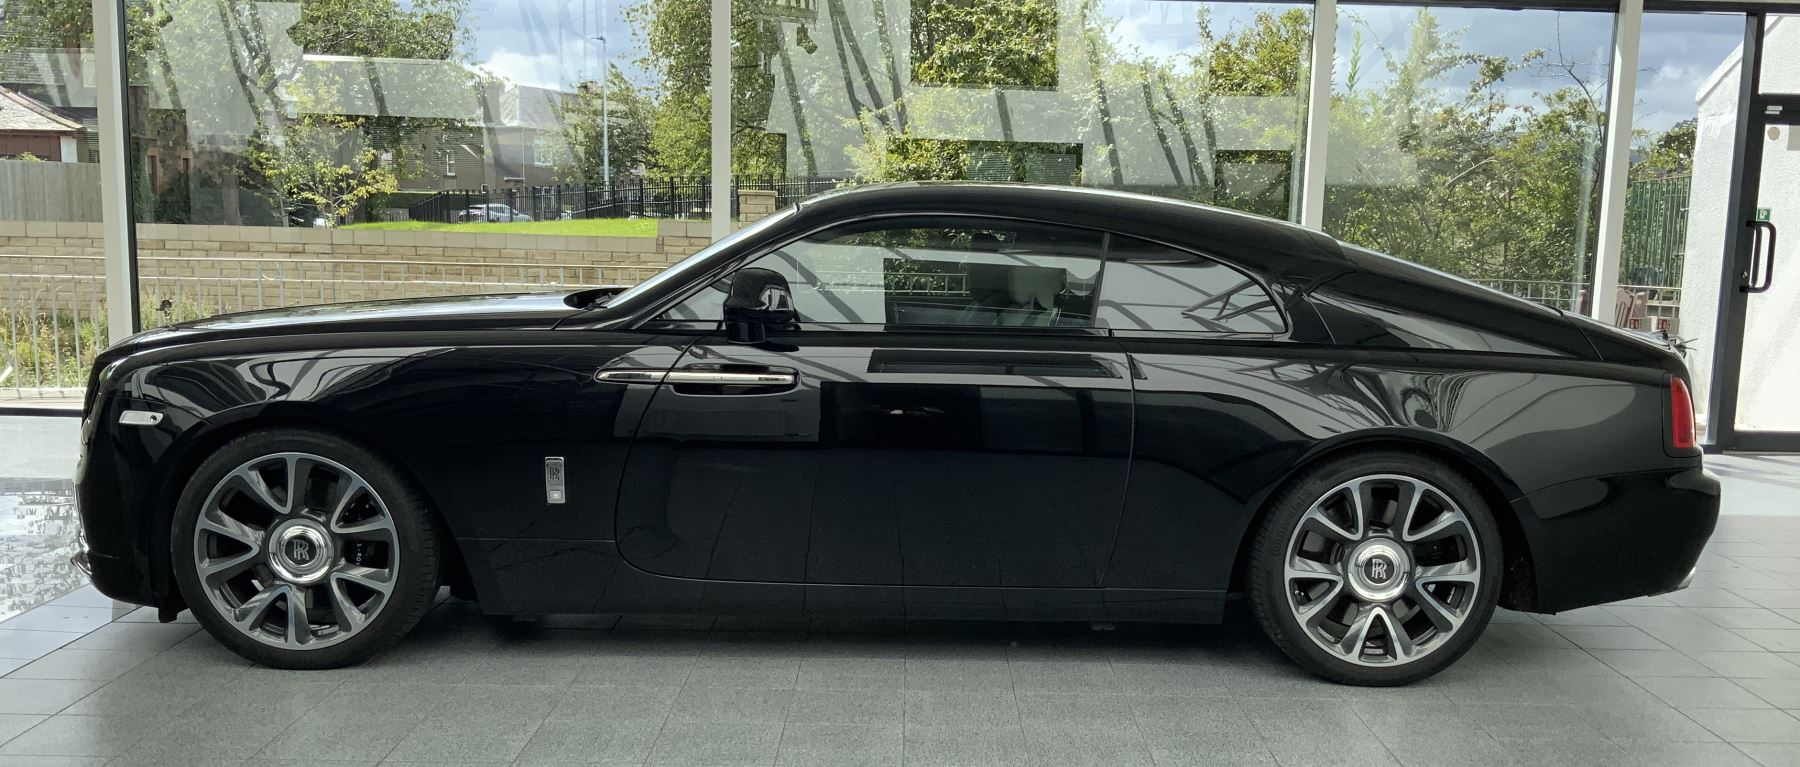 Rolls-Royce Wraith V12 6.6 Automatic 2 door Coupe (2019)